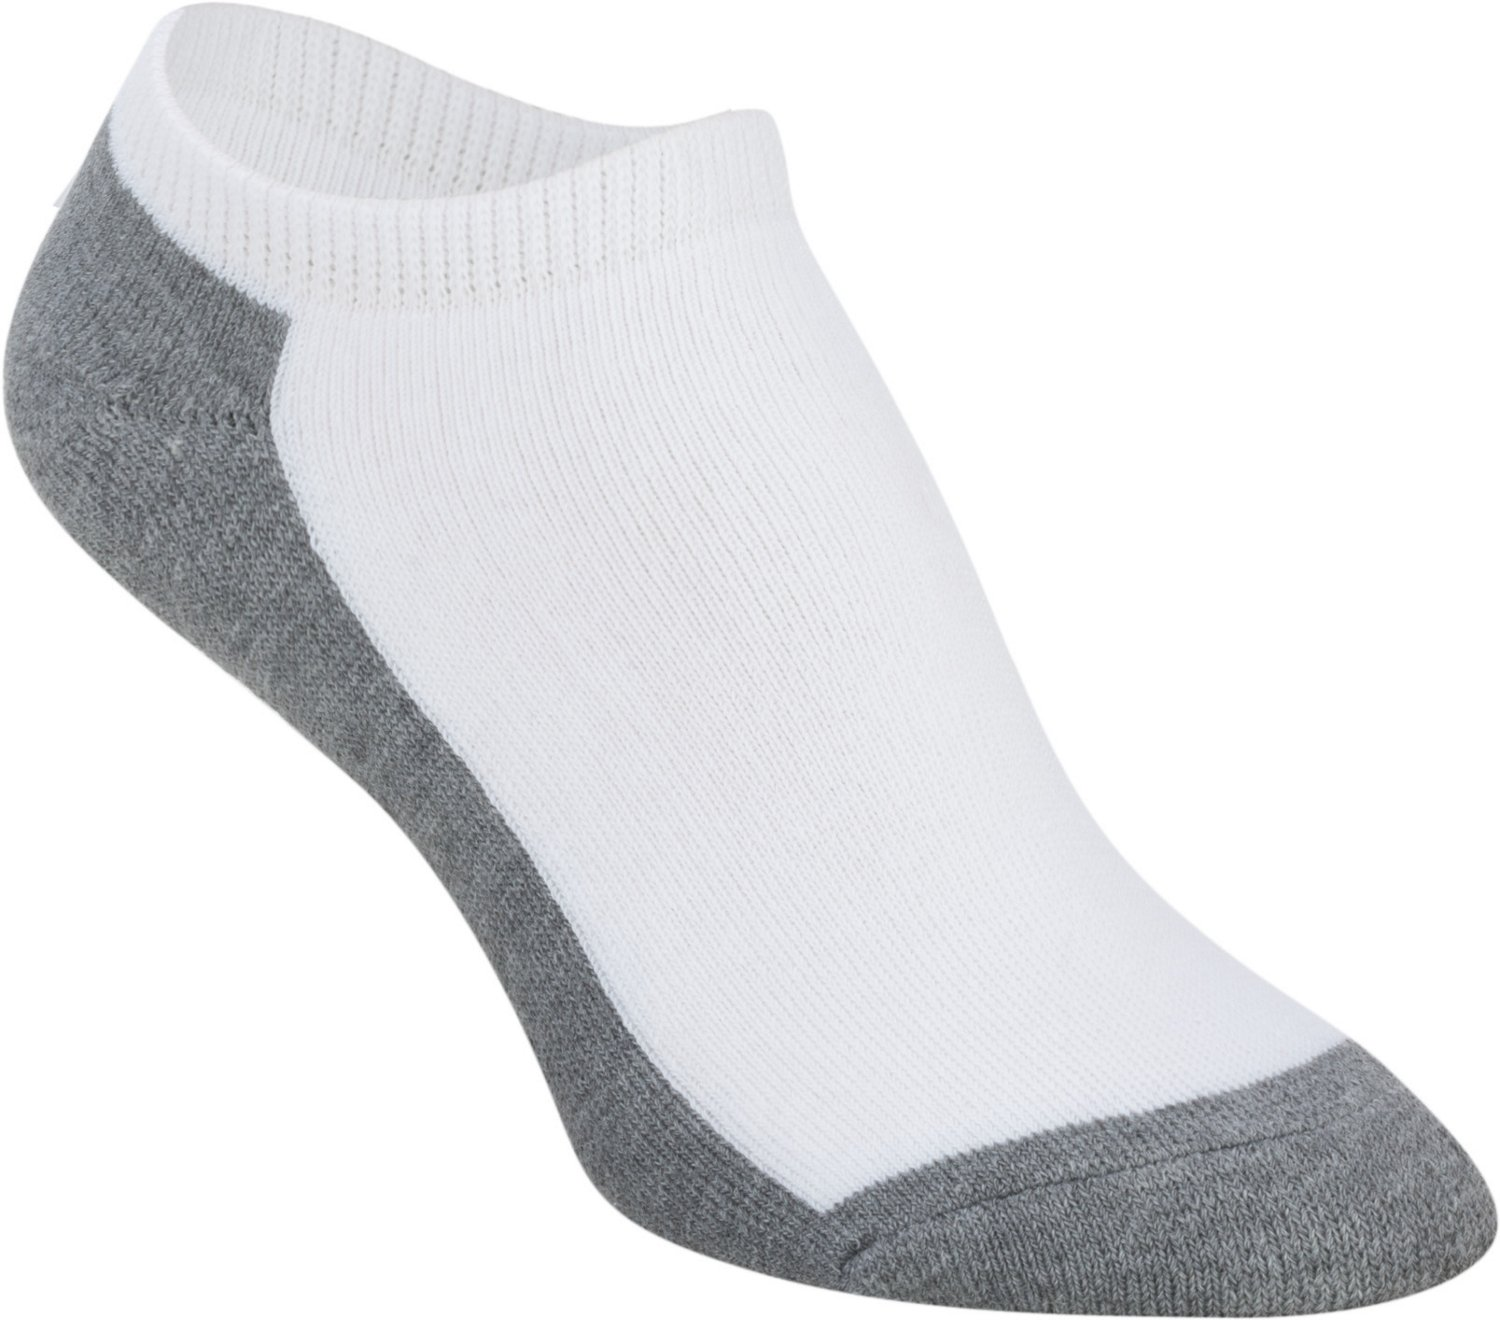 BCG Kids' No-Show Socks 6 Pack - view number 2